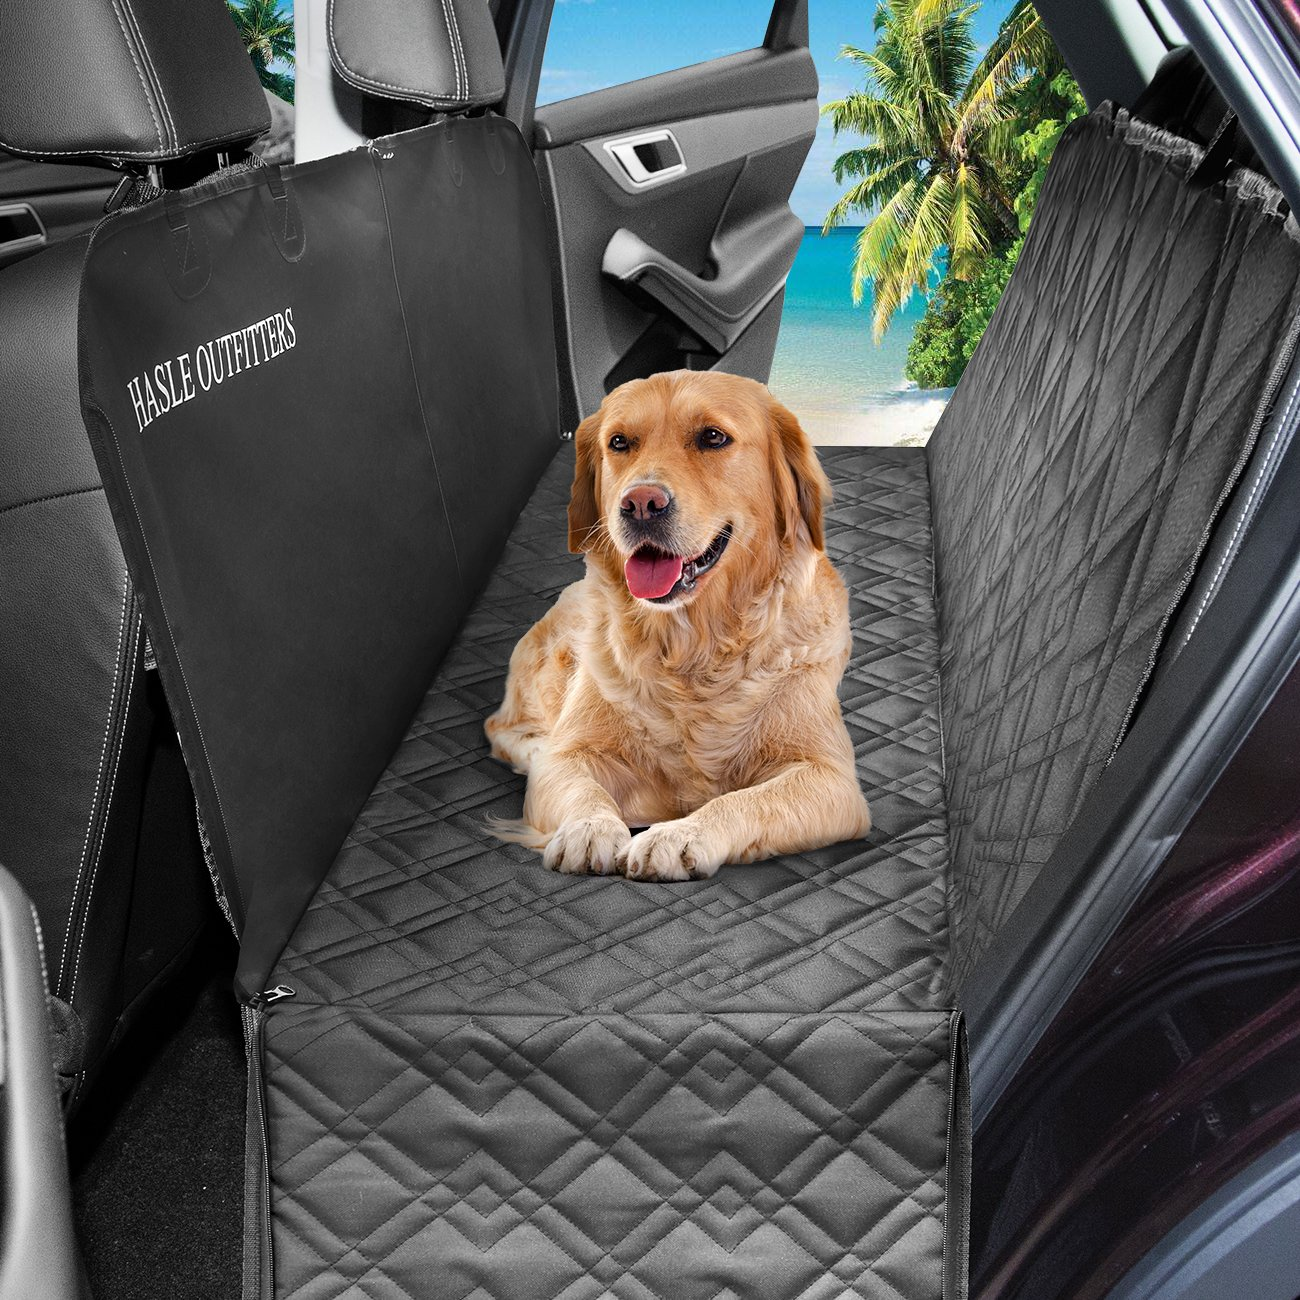 HASLE OUTFITTERS Dog Car Seat Covers, Waterproof Dog Car Hammock, Pet Seat Cover for Cars, Trucks, SUV, 54'' W x 58'' L - Black